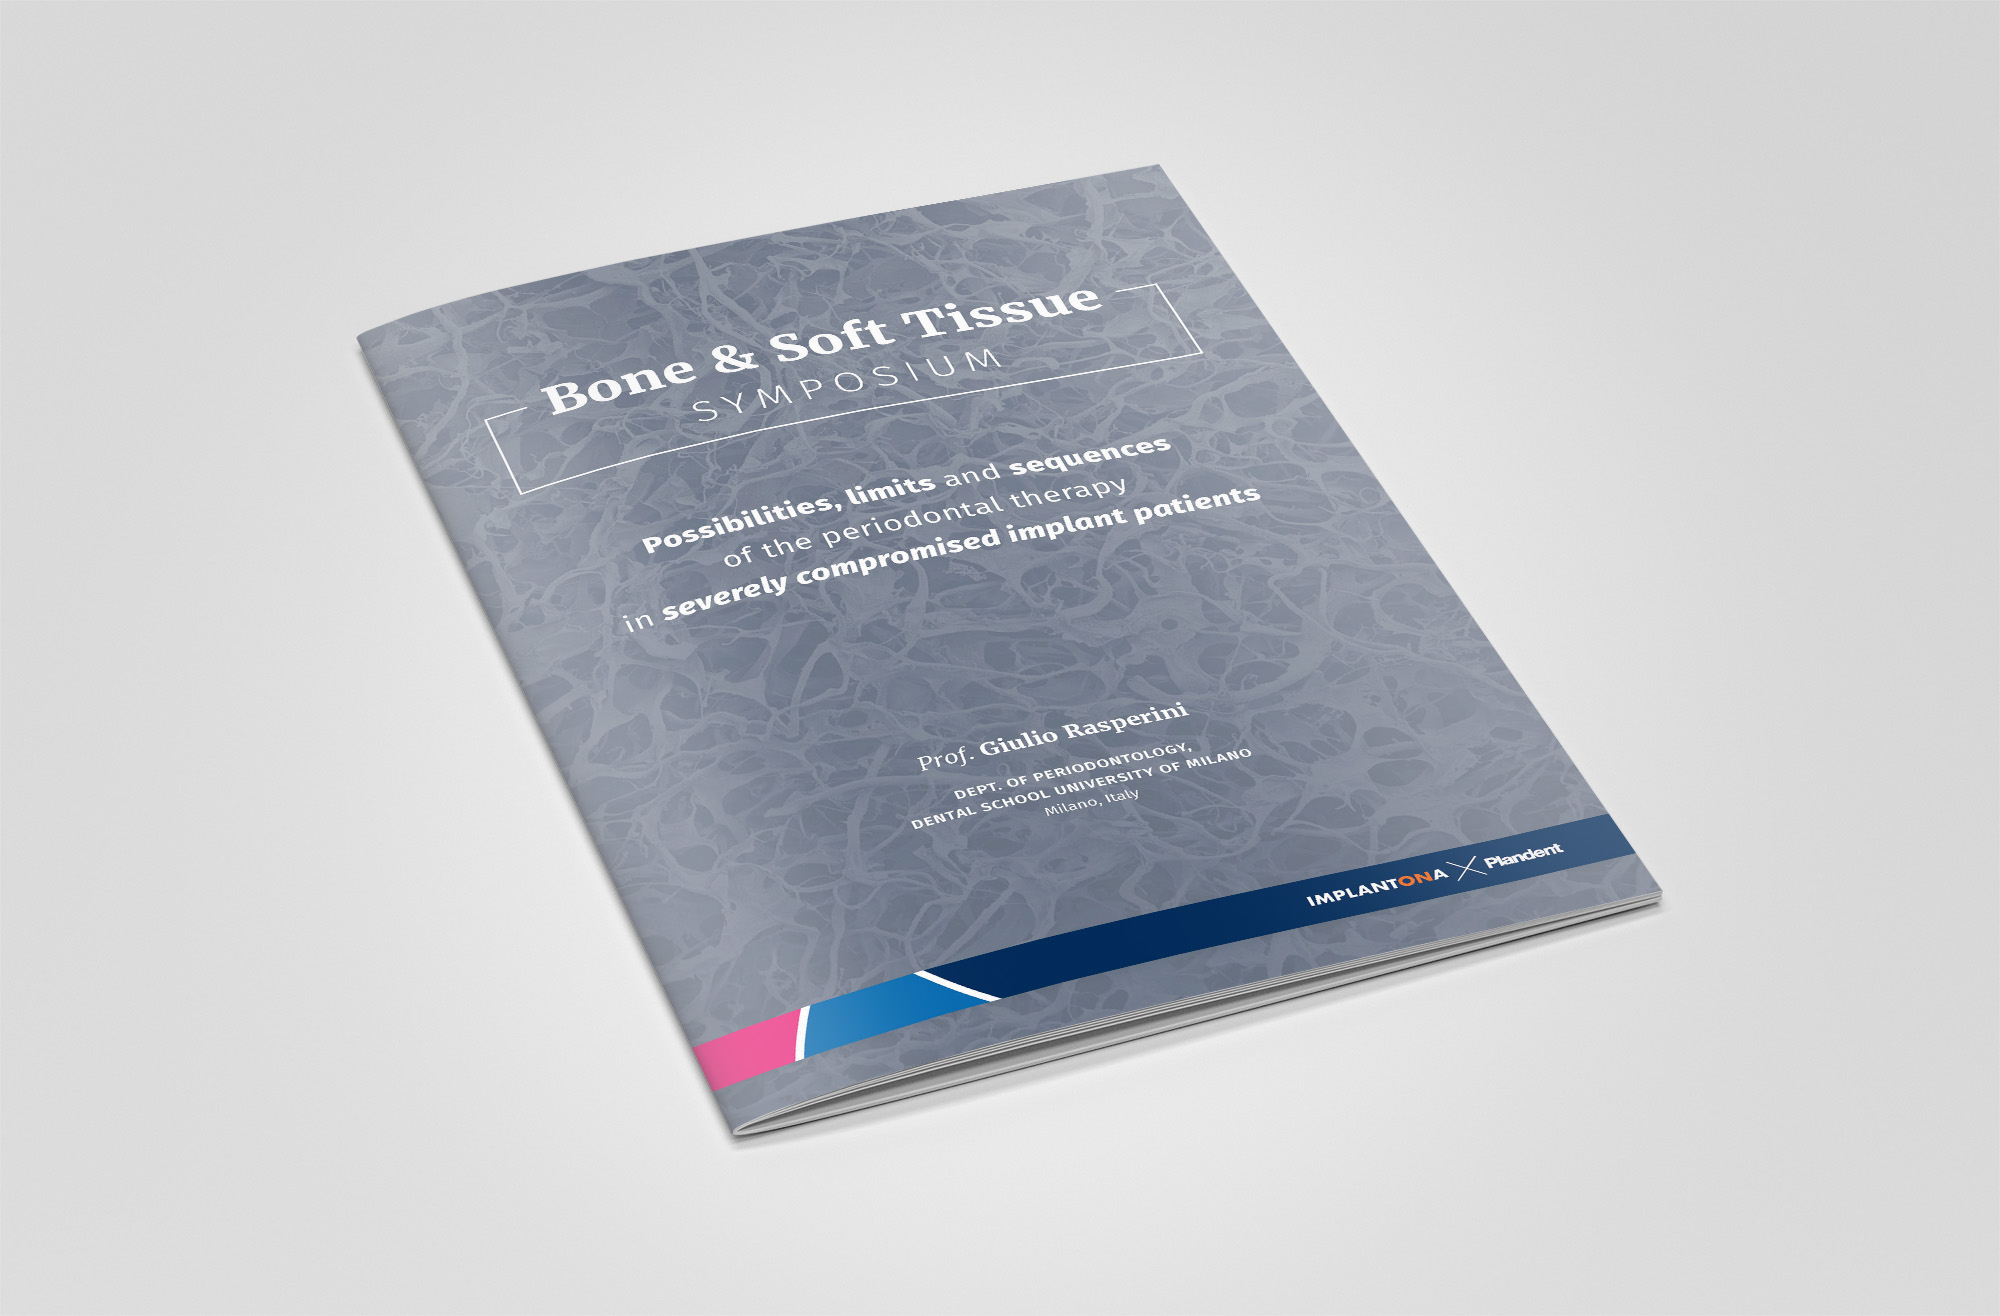 Bone & Soft Tissue Symposium brochure , front cover